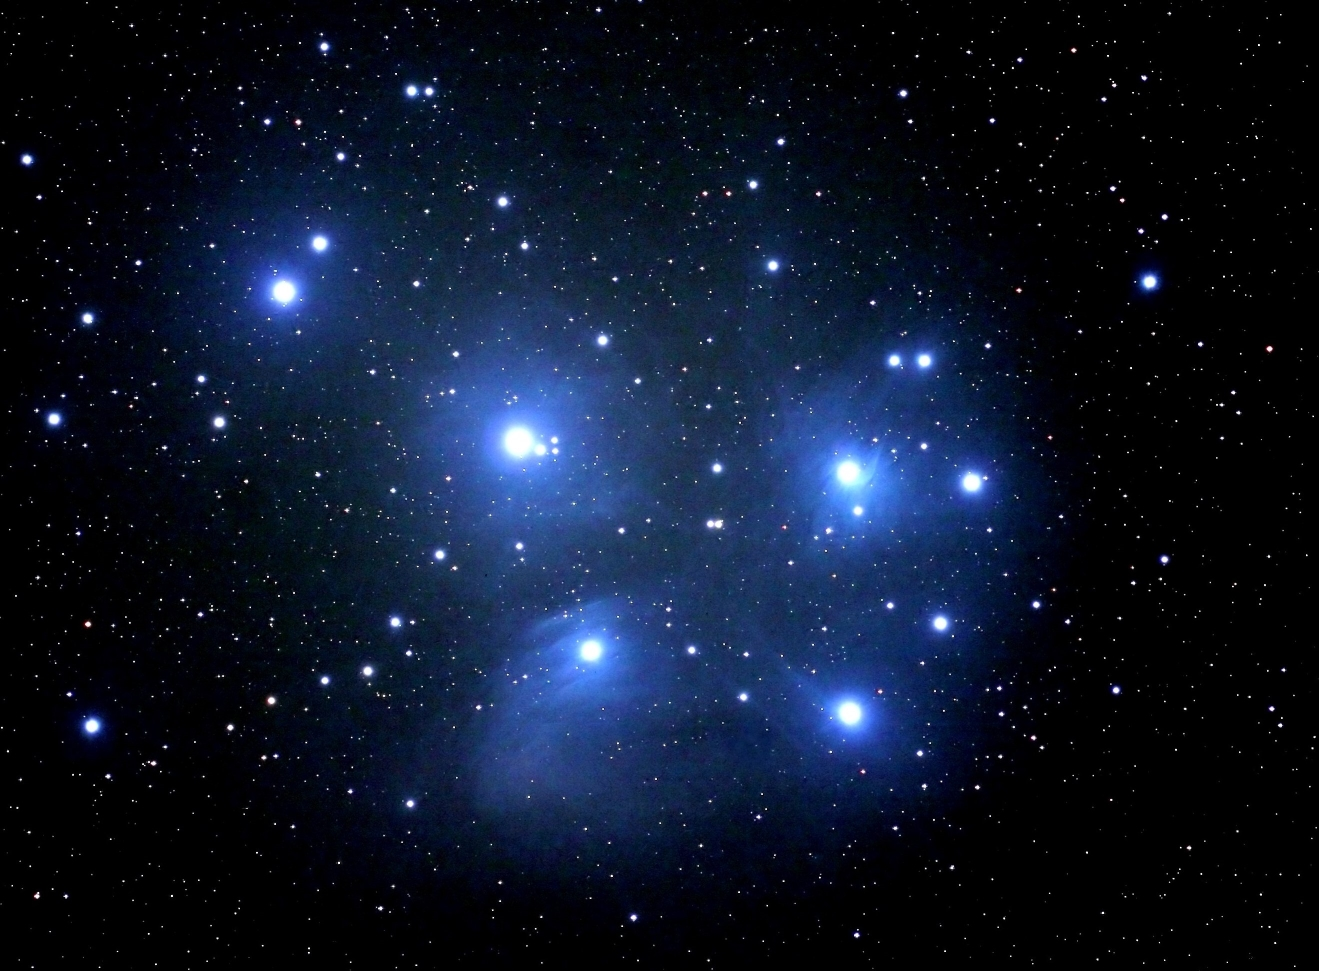 The Pleaides cluster, also known as the Seven Sisters.